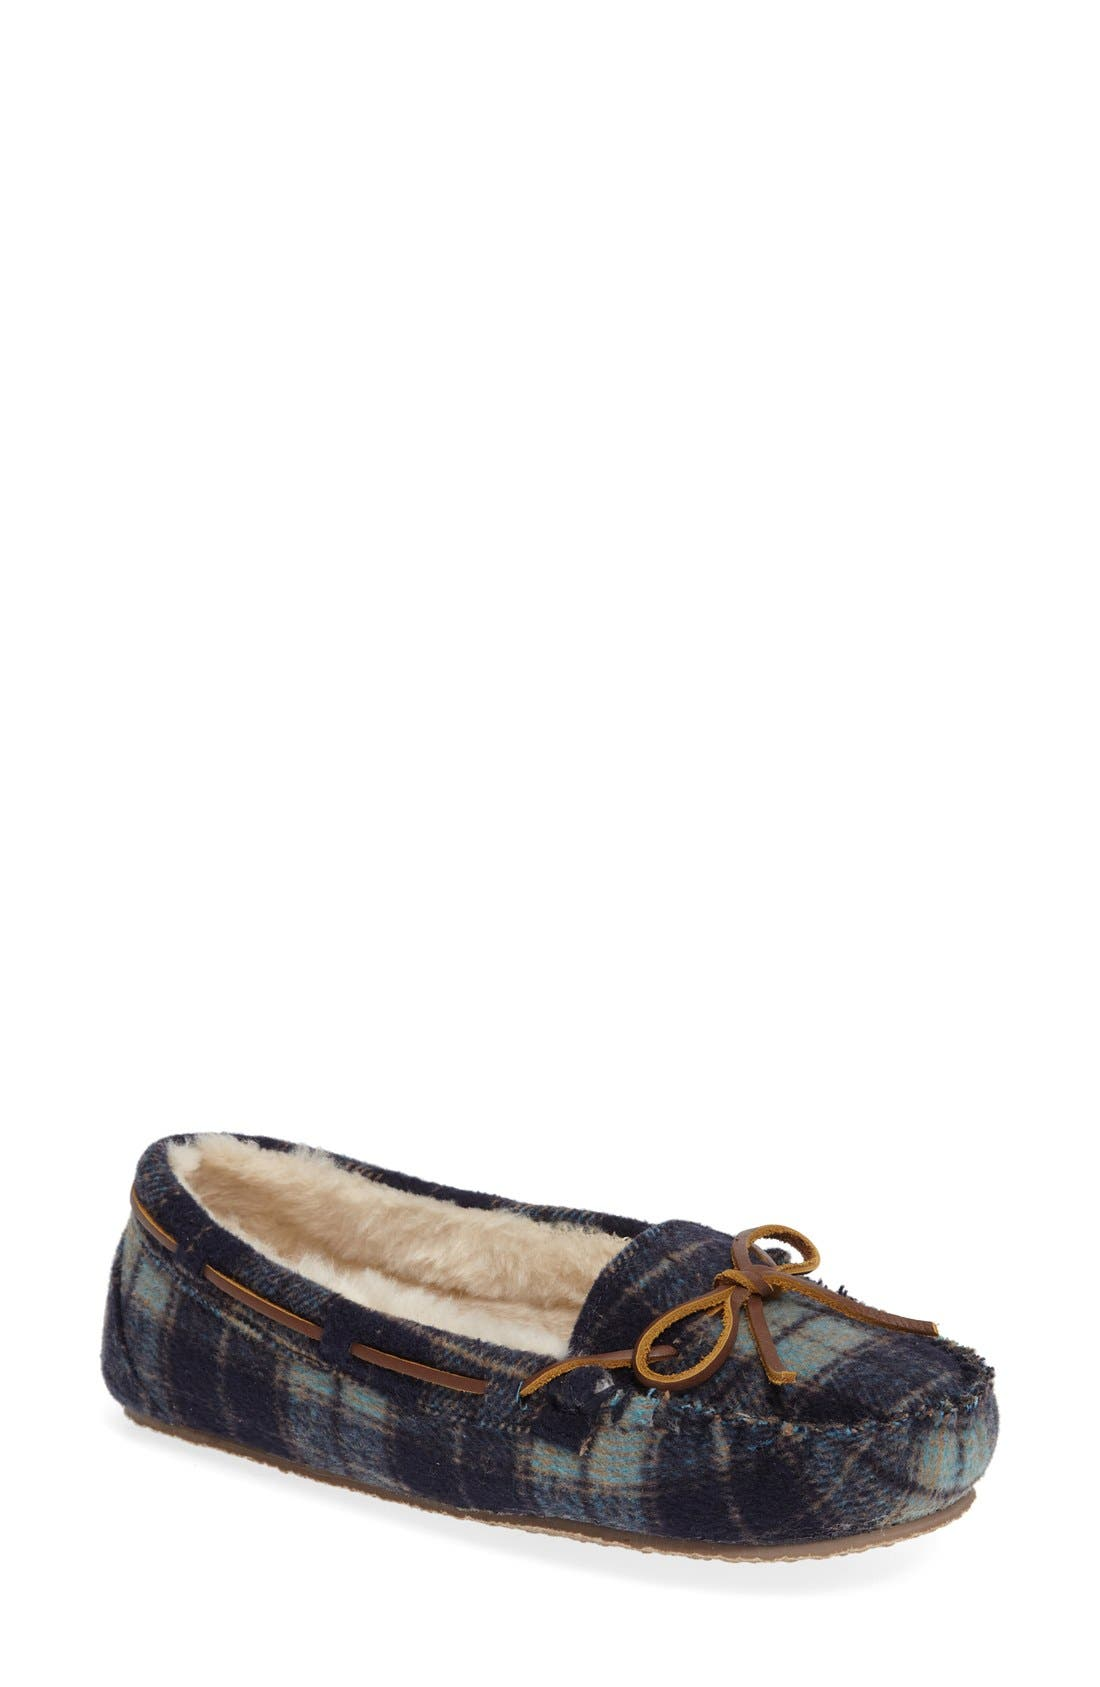 Cally Plaid Faux Fur Lined Slipper,                             Main thumbnail 1, color,                             NAVY